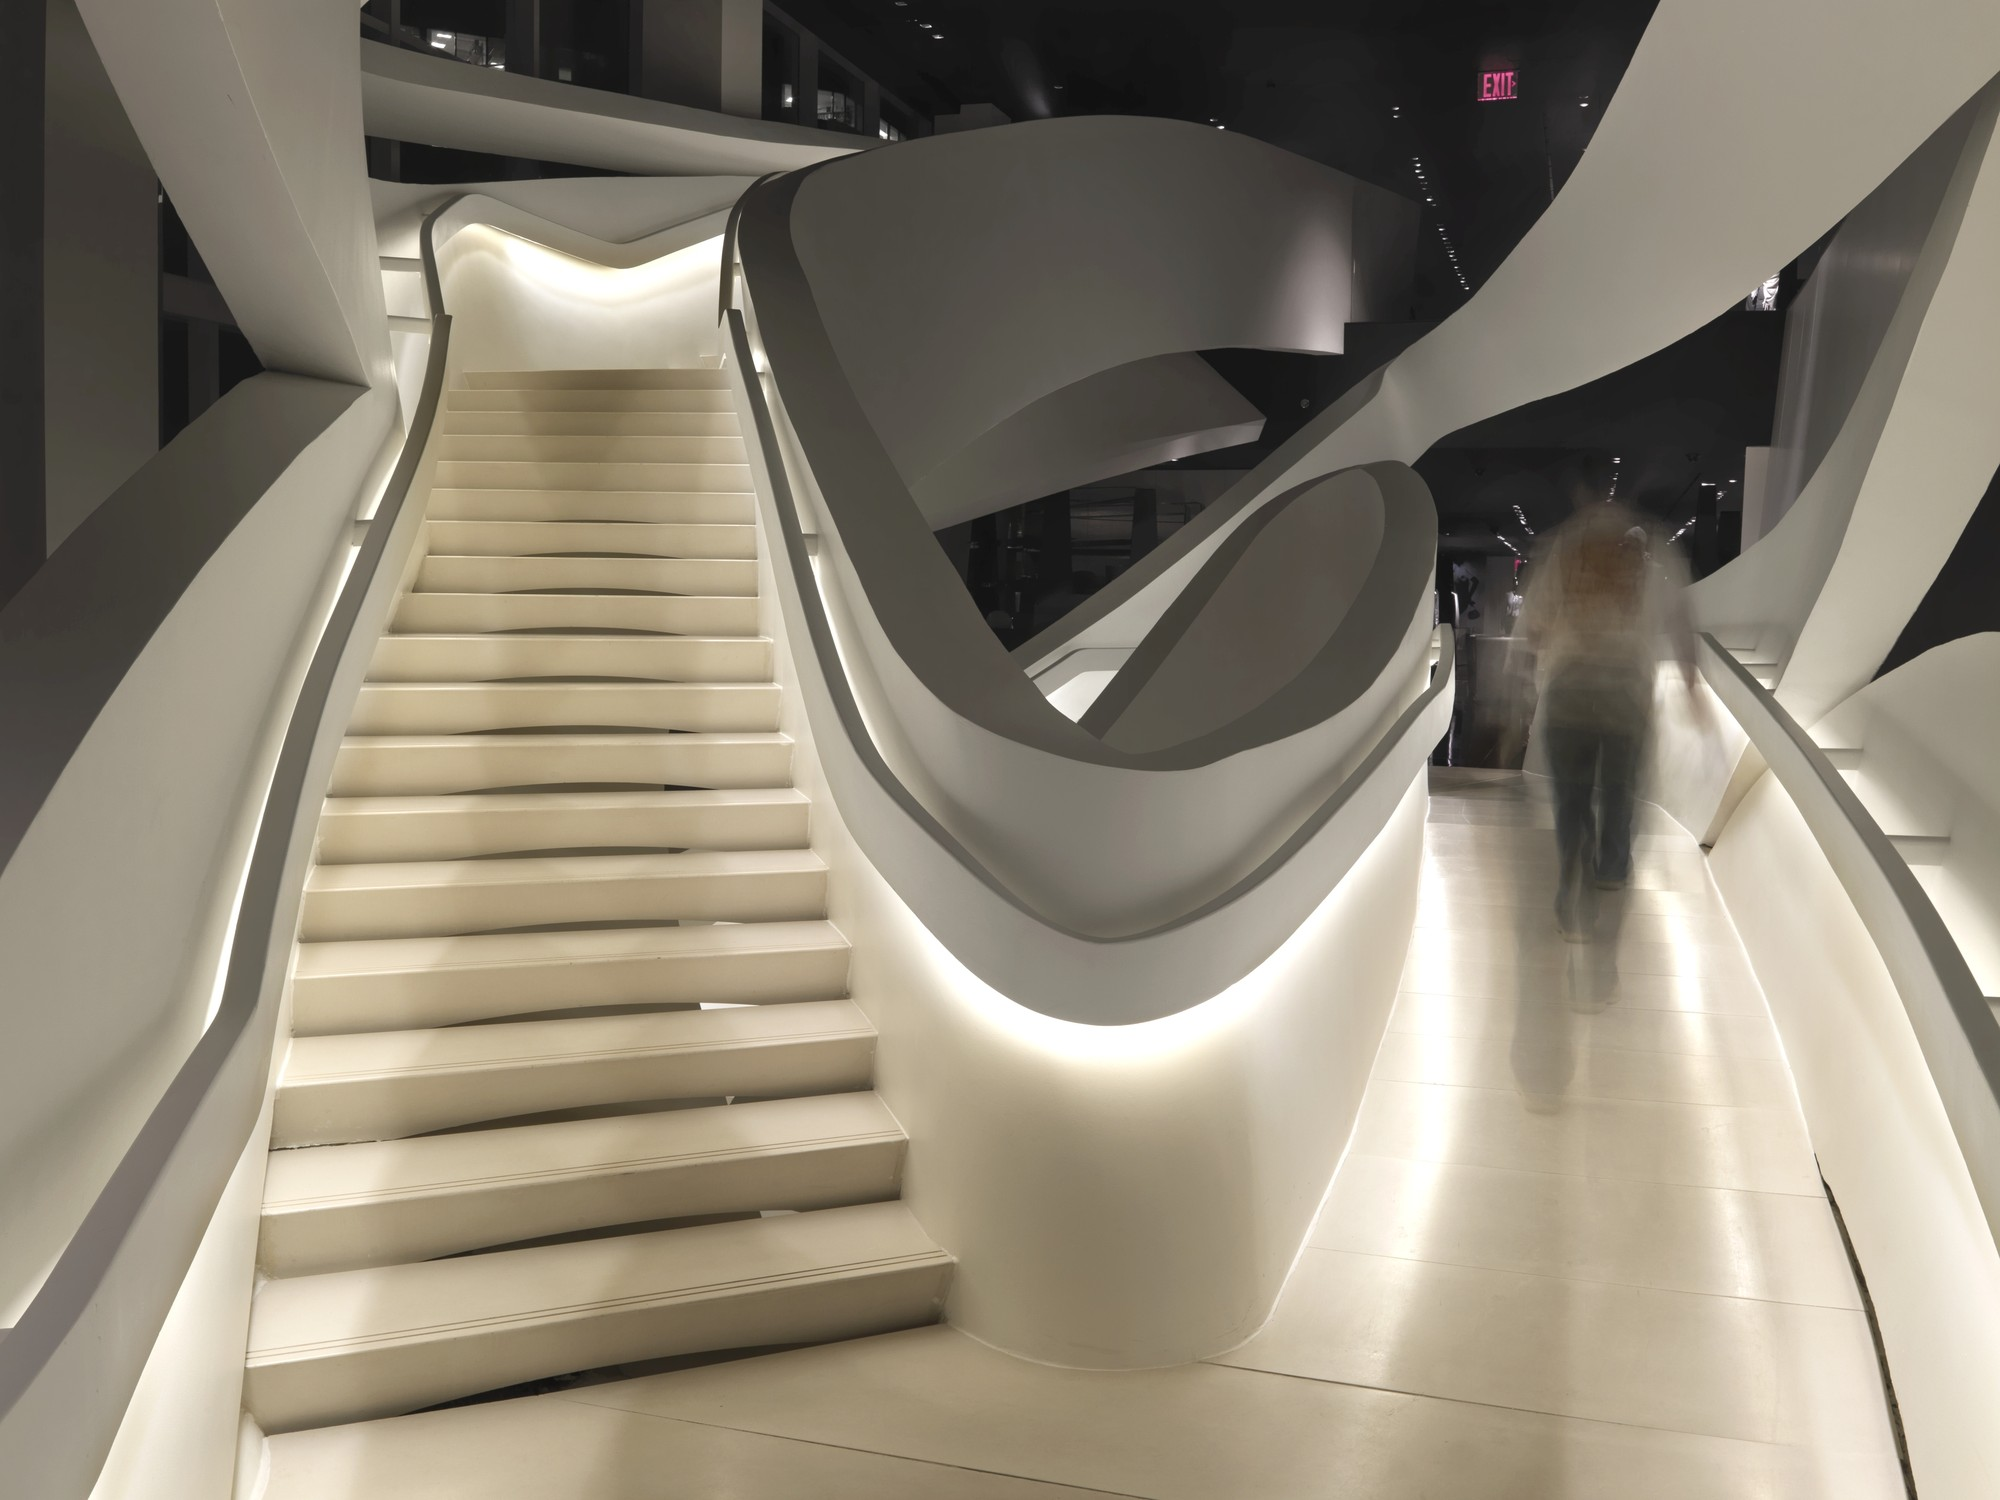 Armani Fifth Avenue, New York. Architect: Fuksas Architects. Lighting design: Speirs + Major. Photo: Allan Toft. Image © Speirs + Major